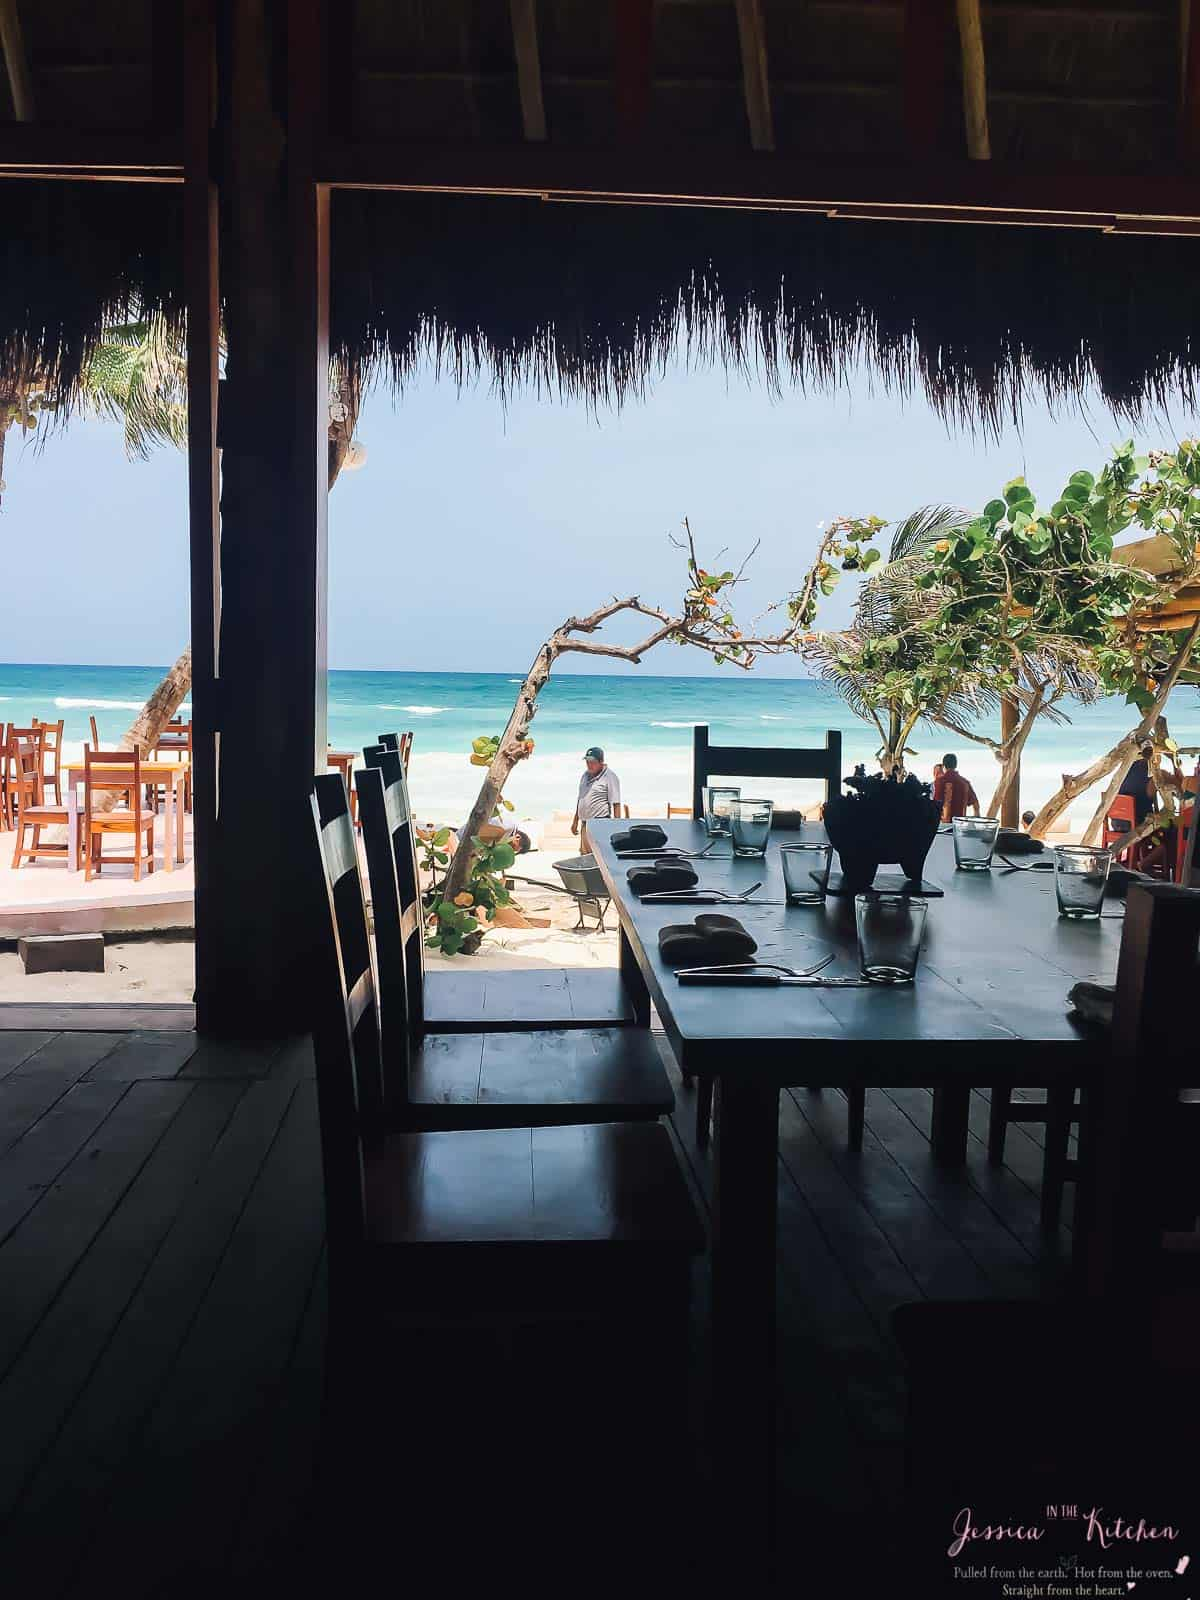 Inside a restaurant looking out to the beach.